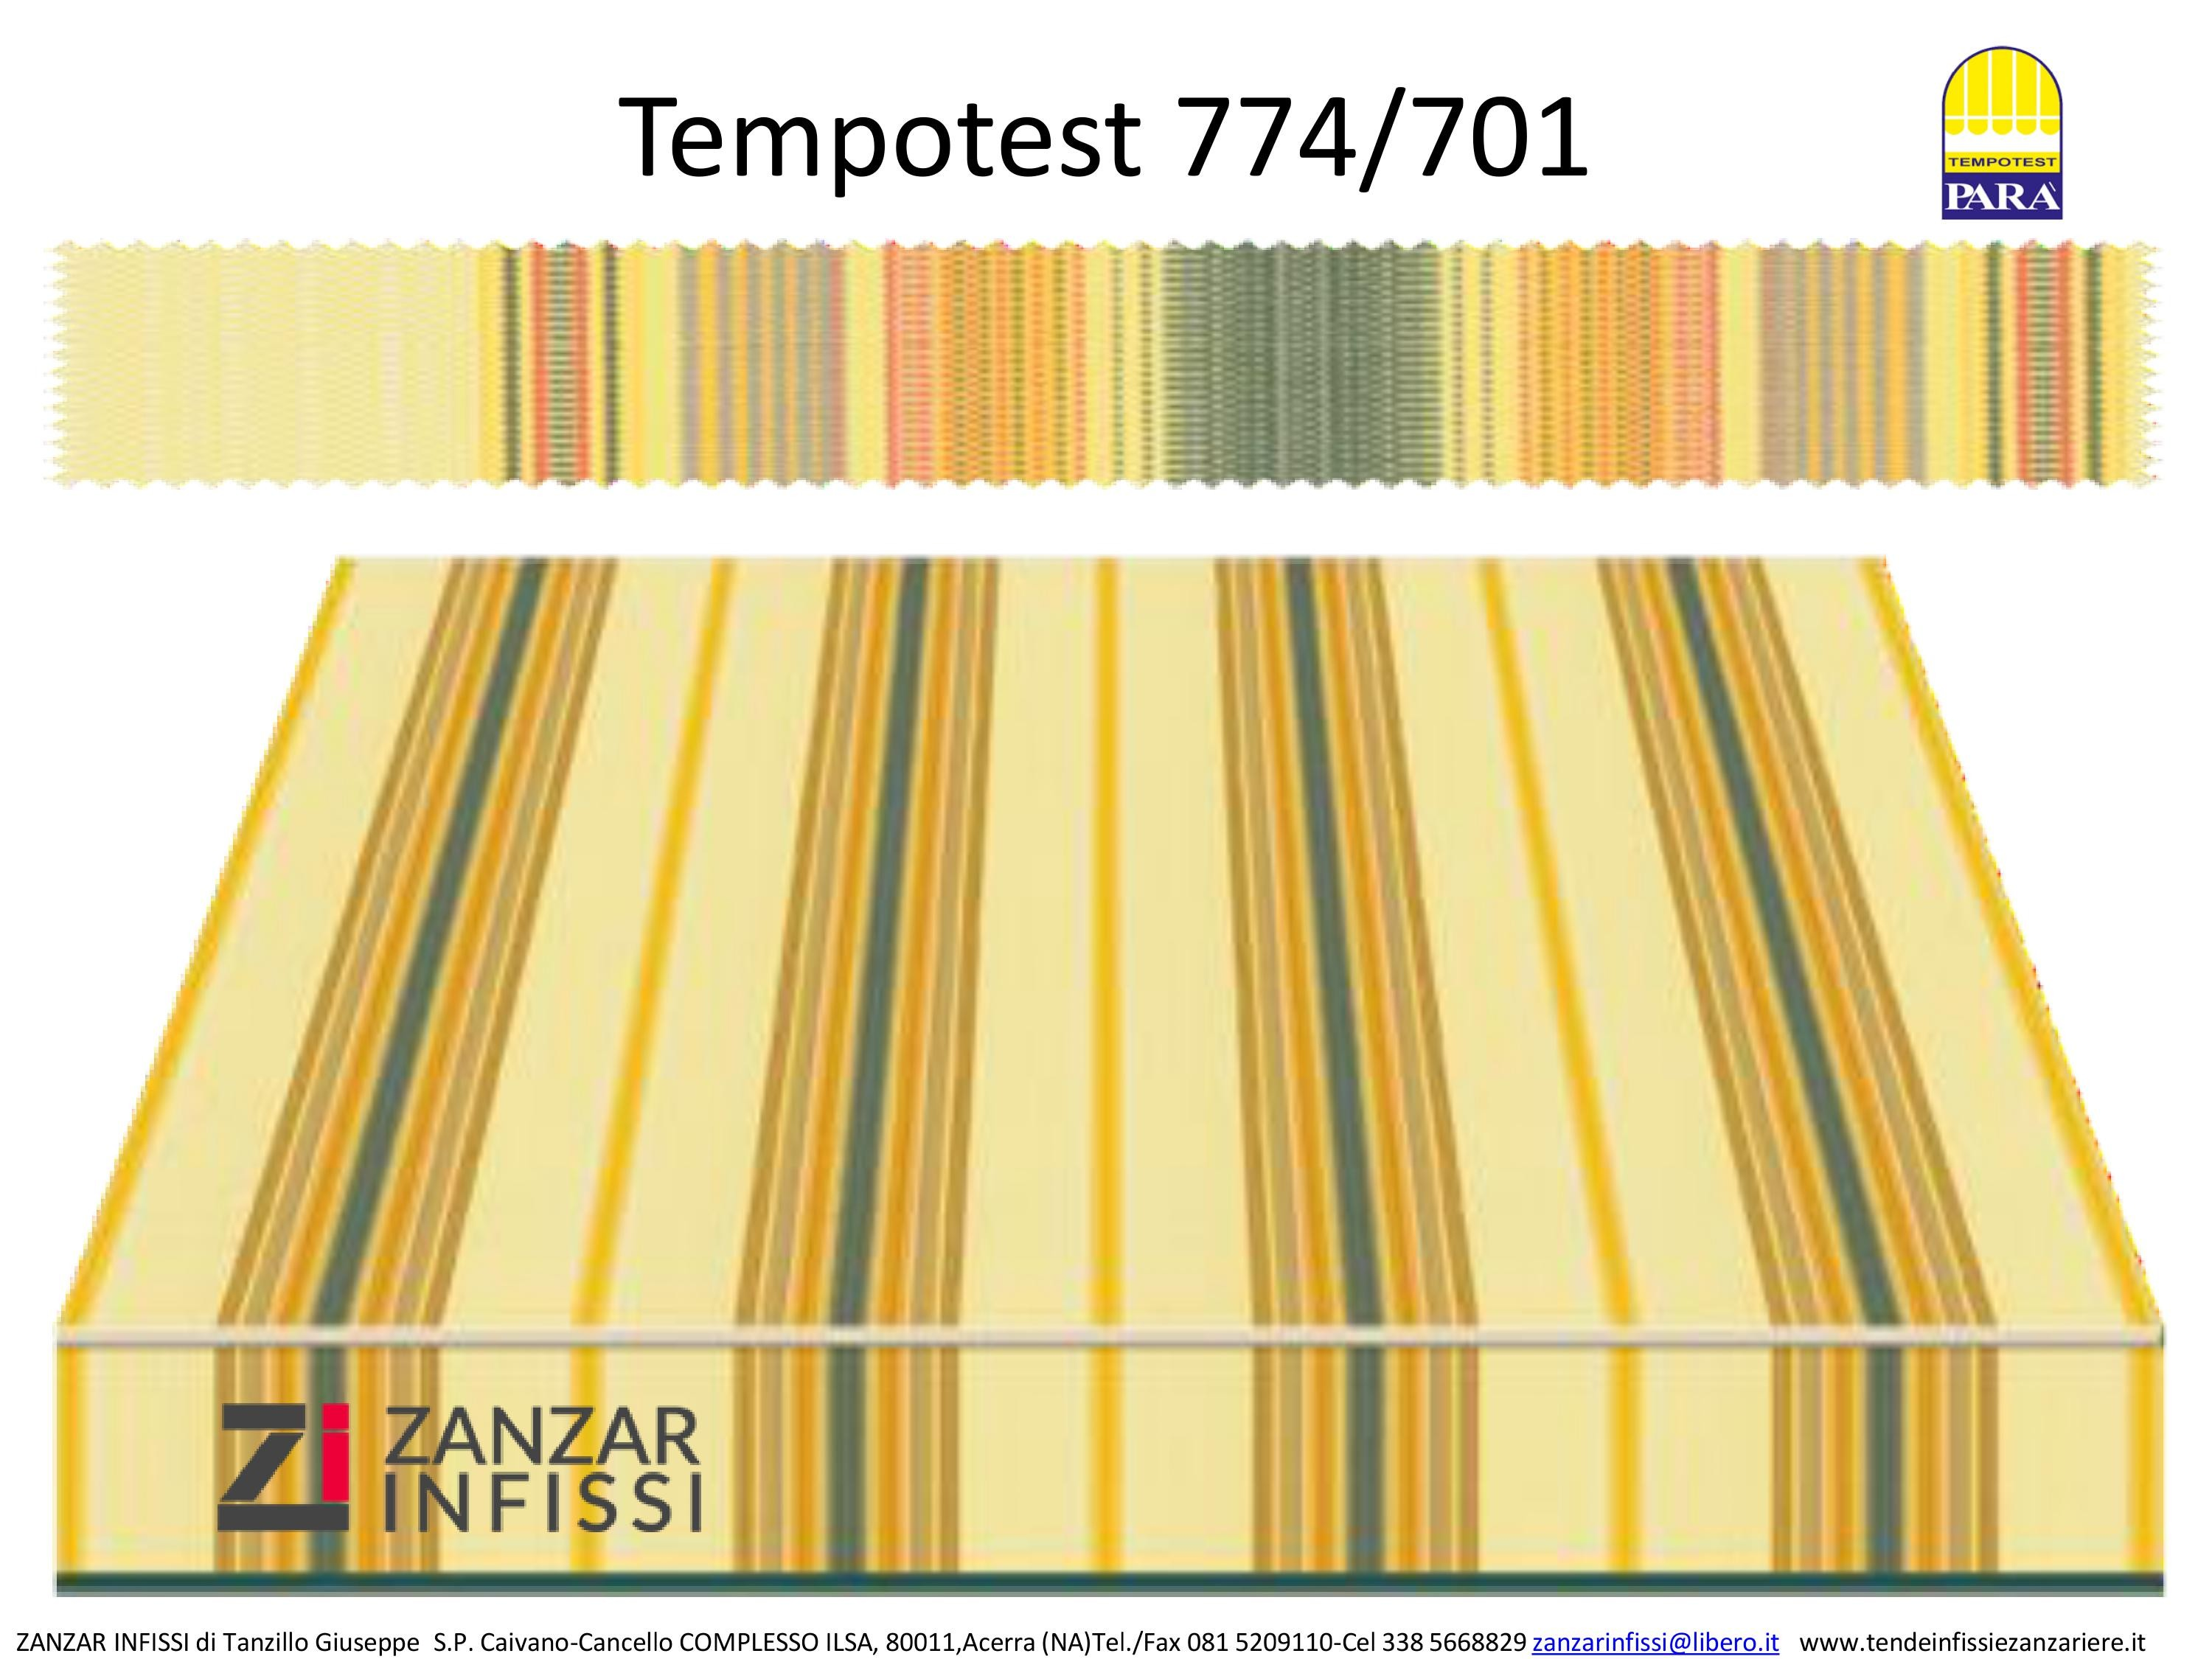 Tempotest 774/701